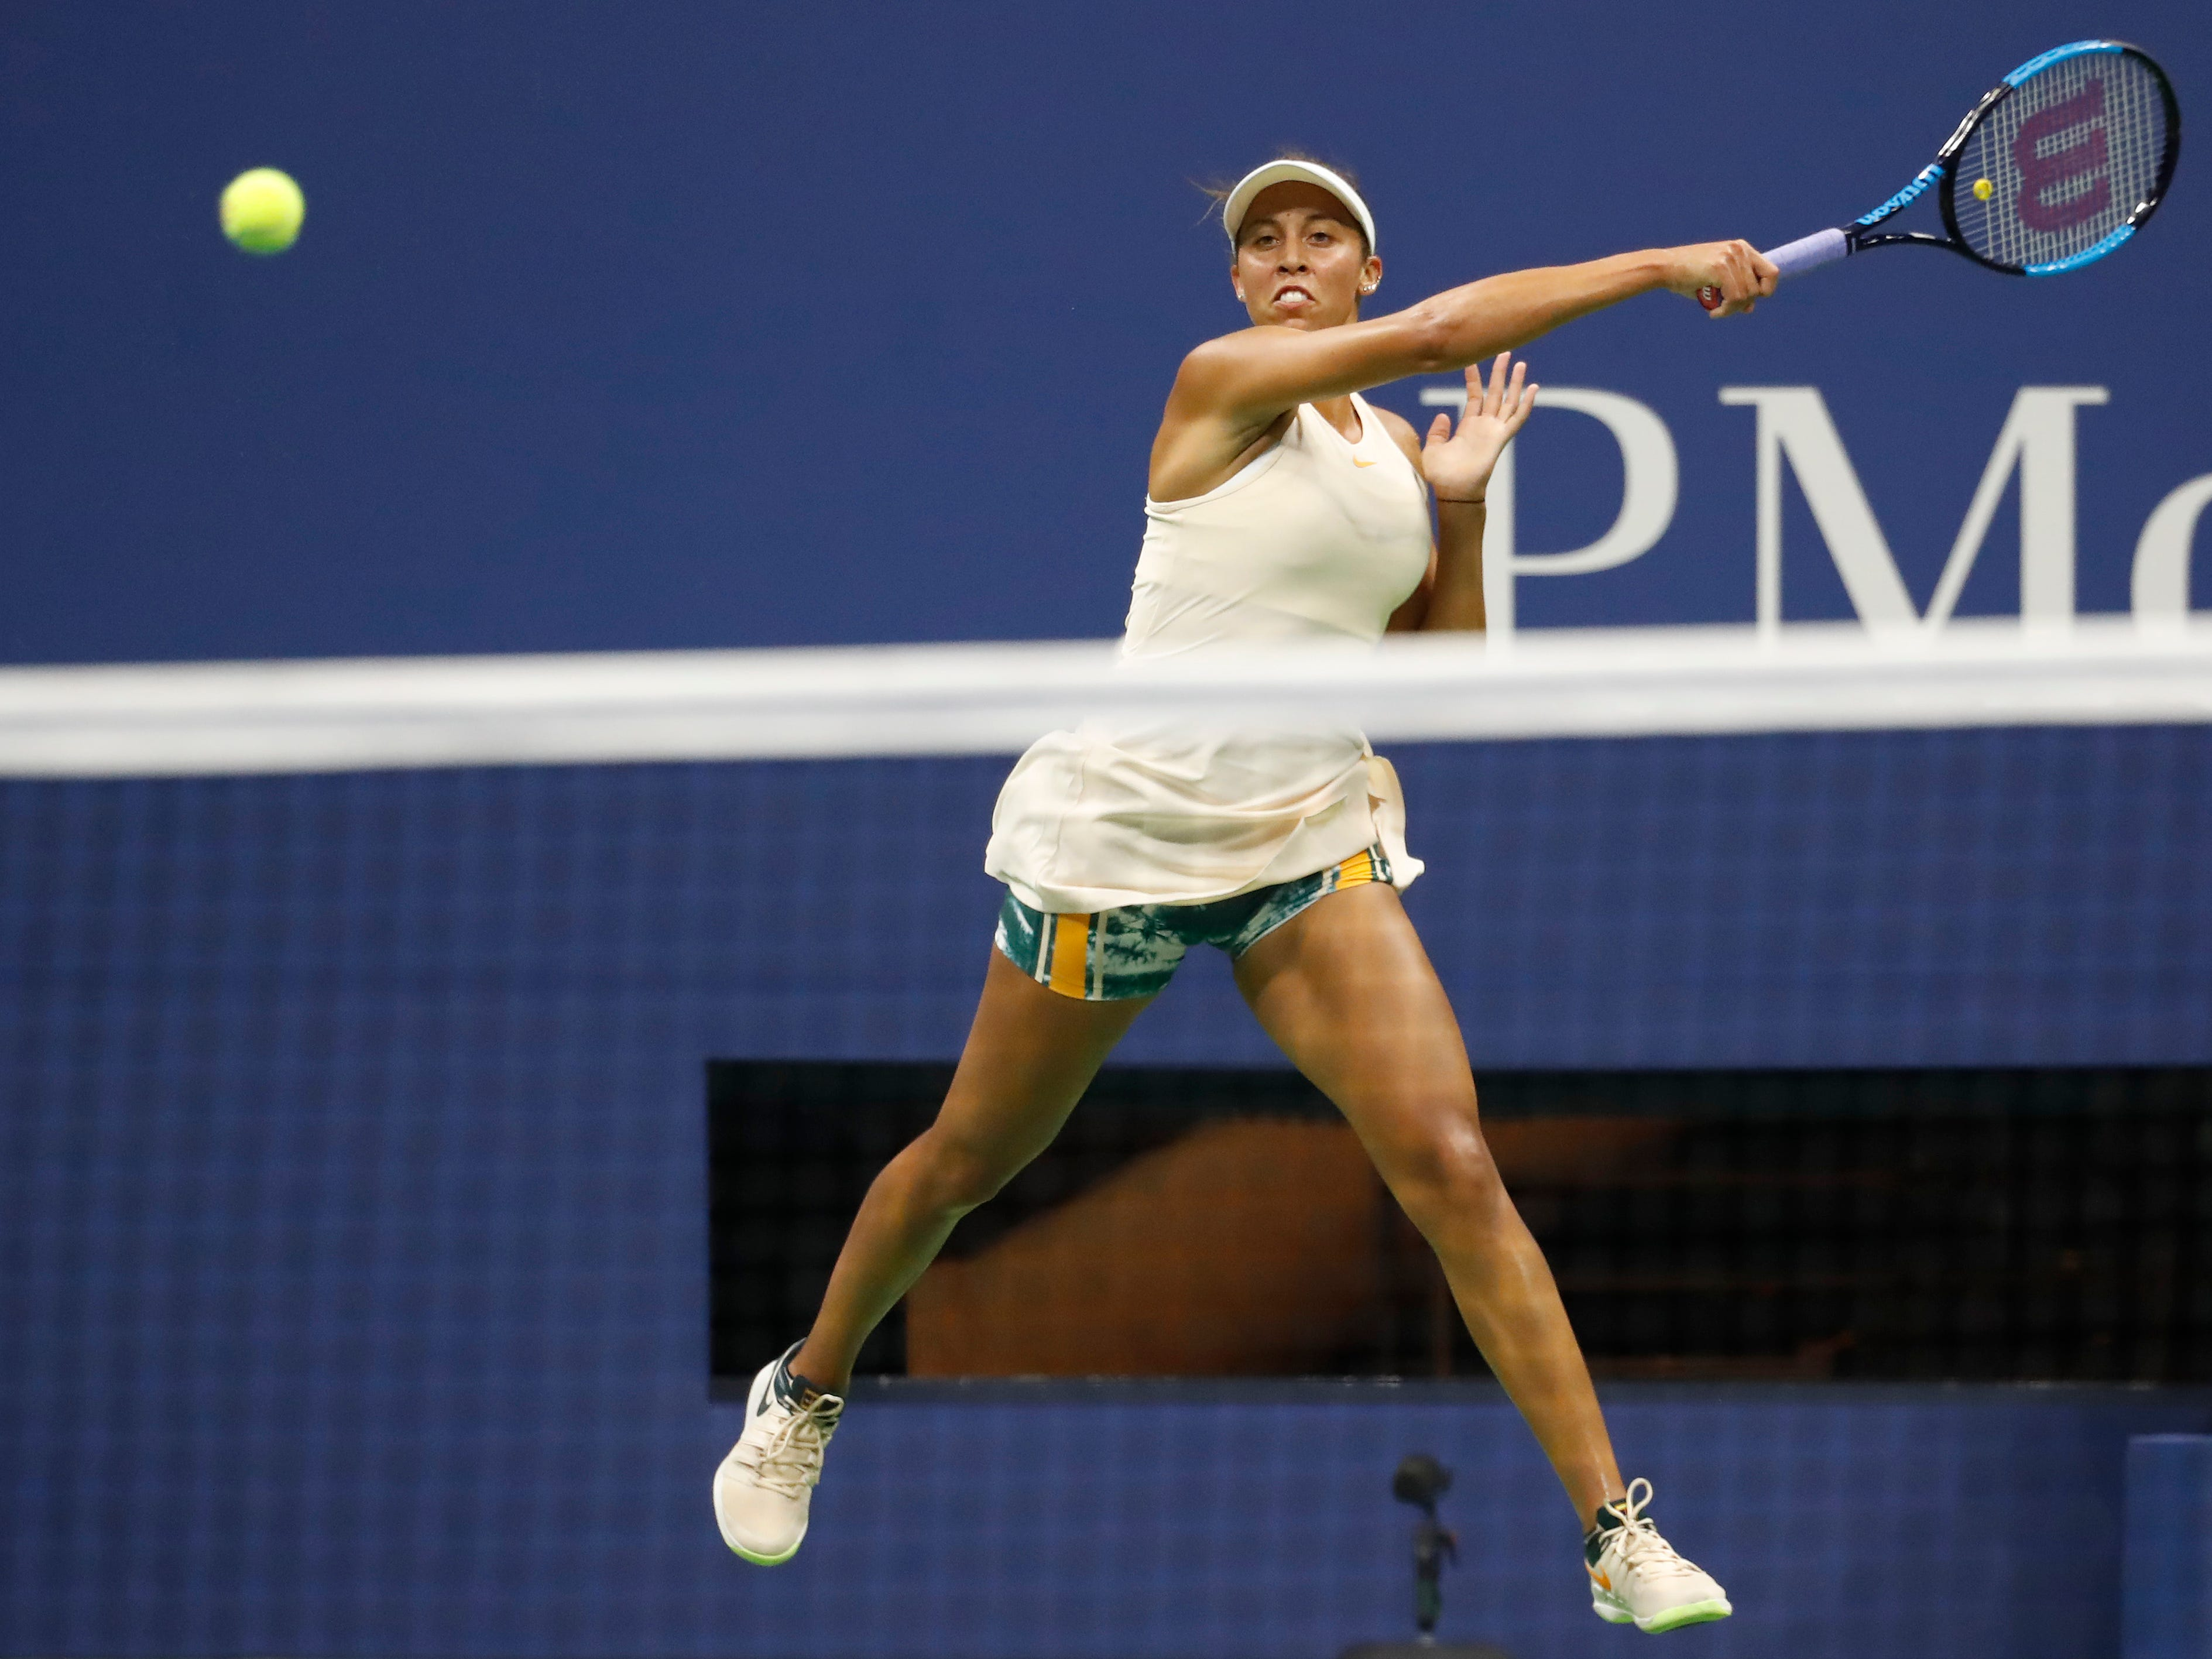 Madison Keys of the USA smacks a forehand during her 6-4, 6-4 victory against Pauline Parmentier of France.